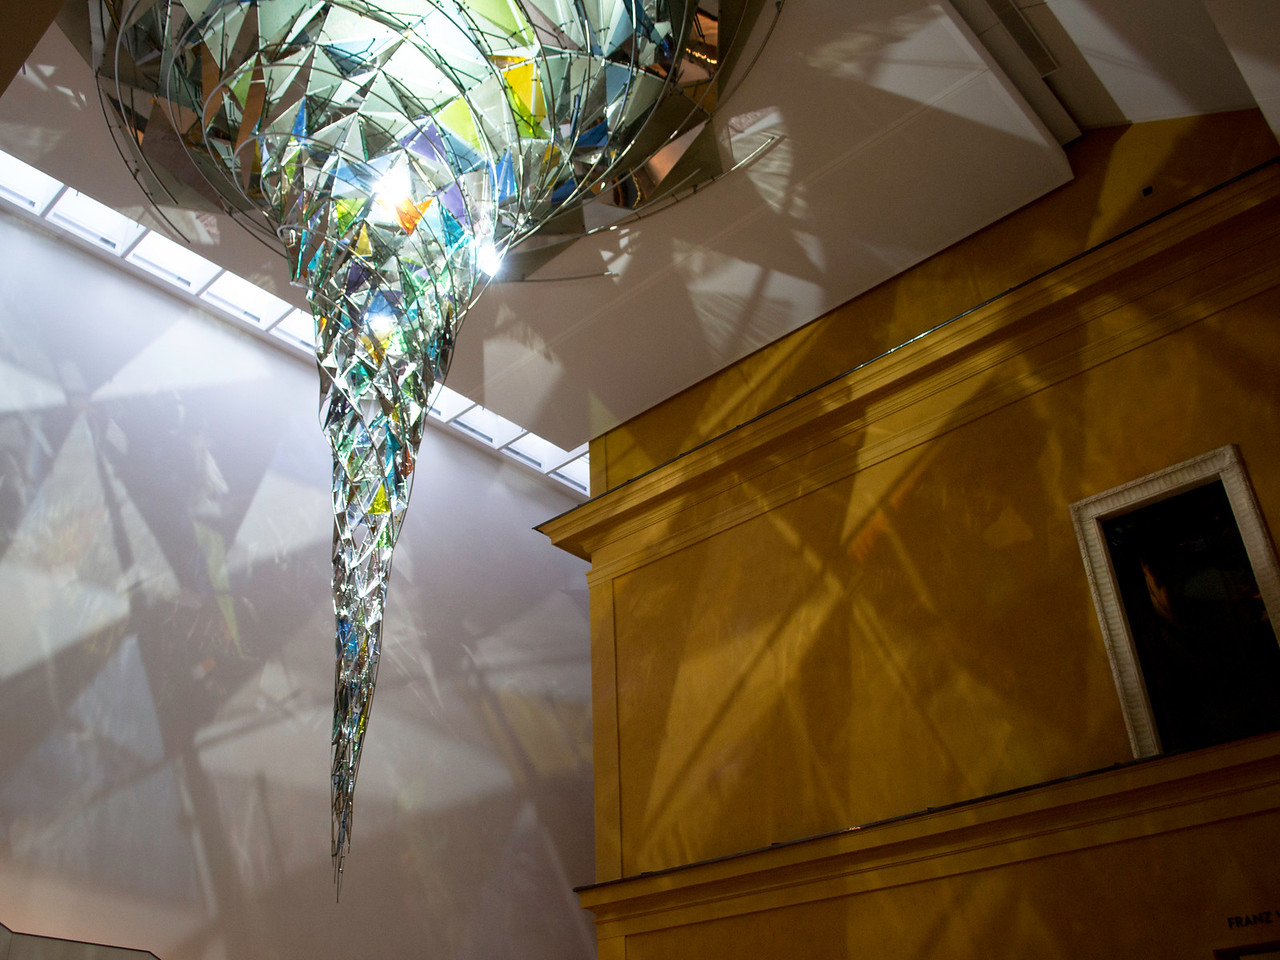 Lensbachhaus Museum. This is the gallery lighting when you arrive